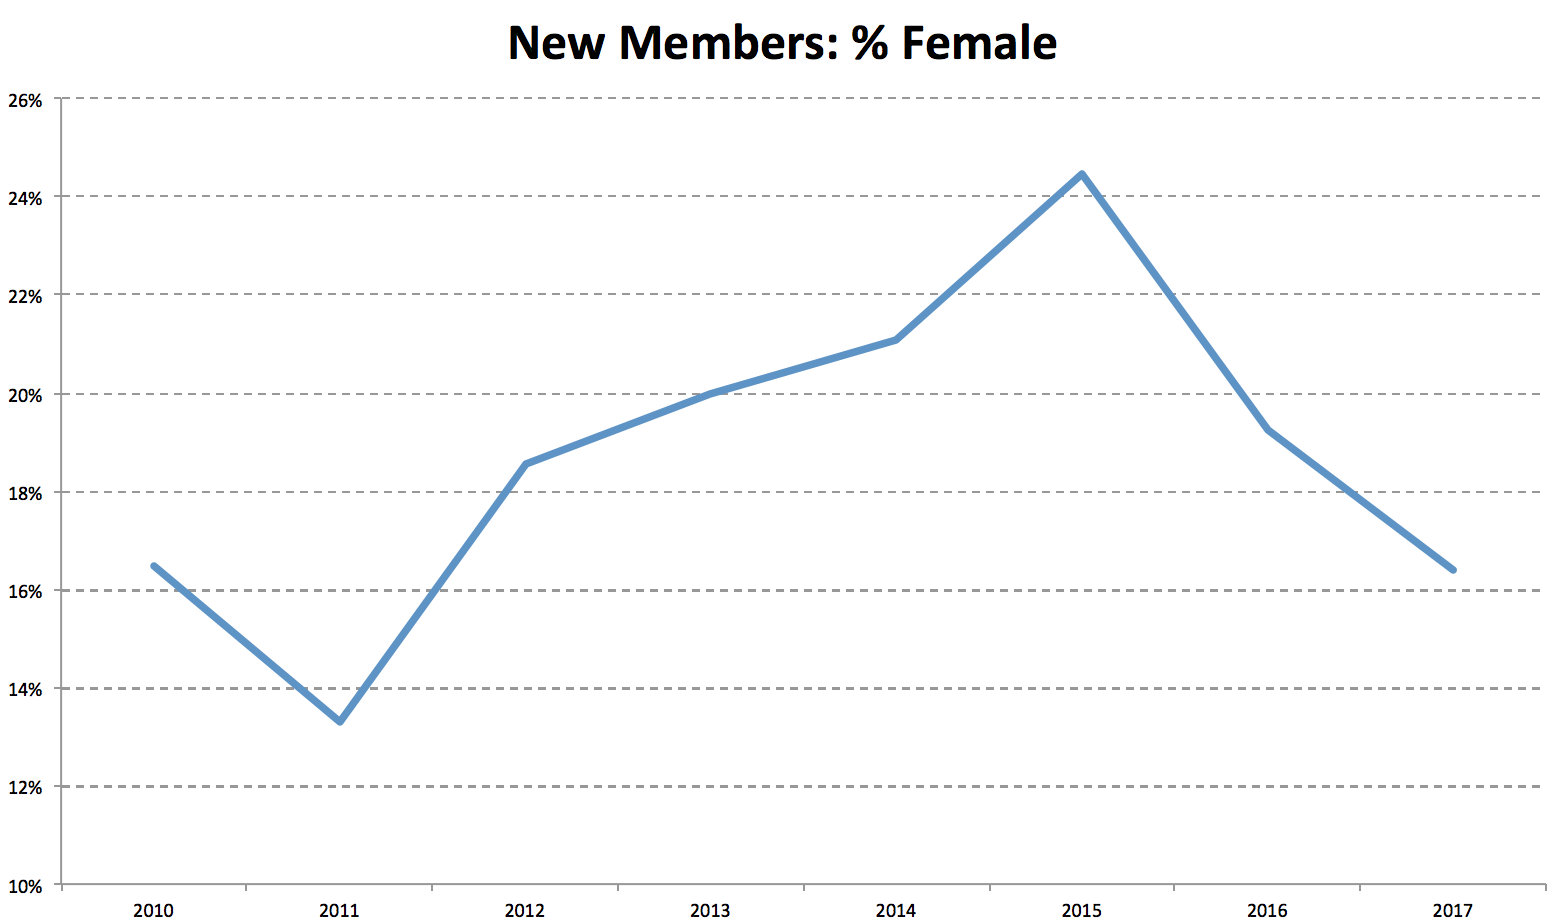 During the past seven years Women have represented 13-24% of each year of new members. These figures represent an improvement from most pre-2010 statistics though the declines seen in 2016/2017 are surprising.